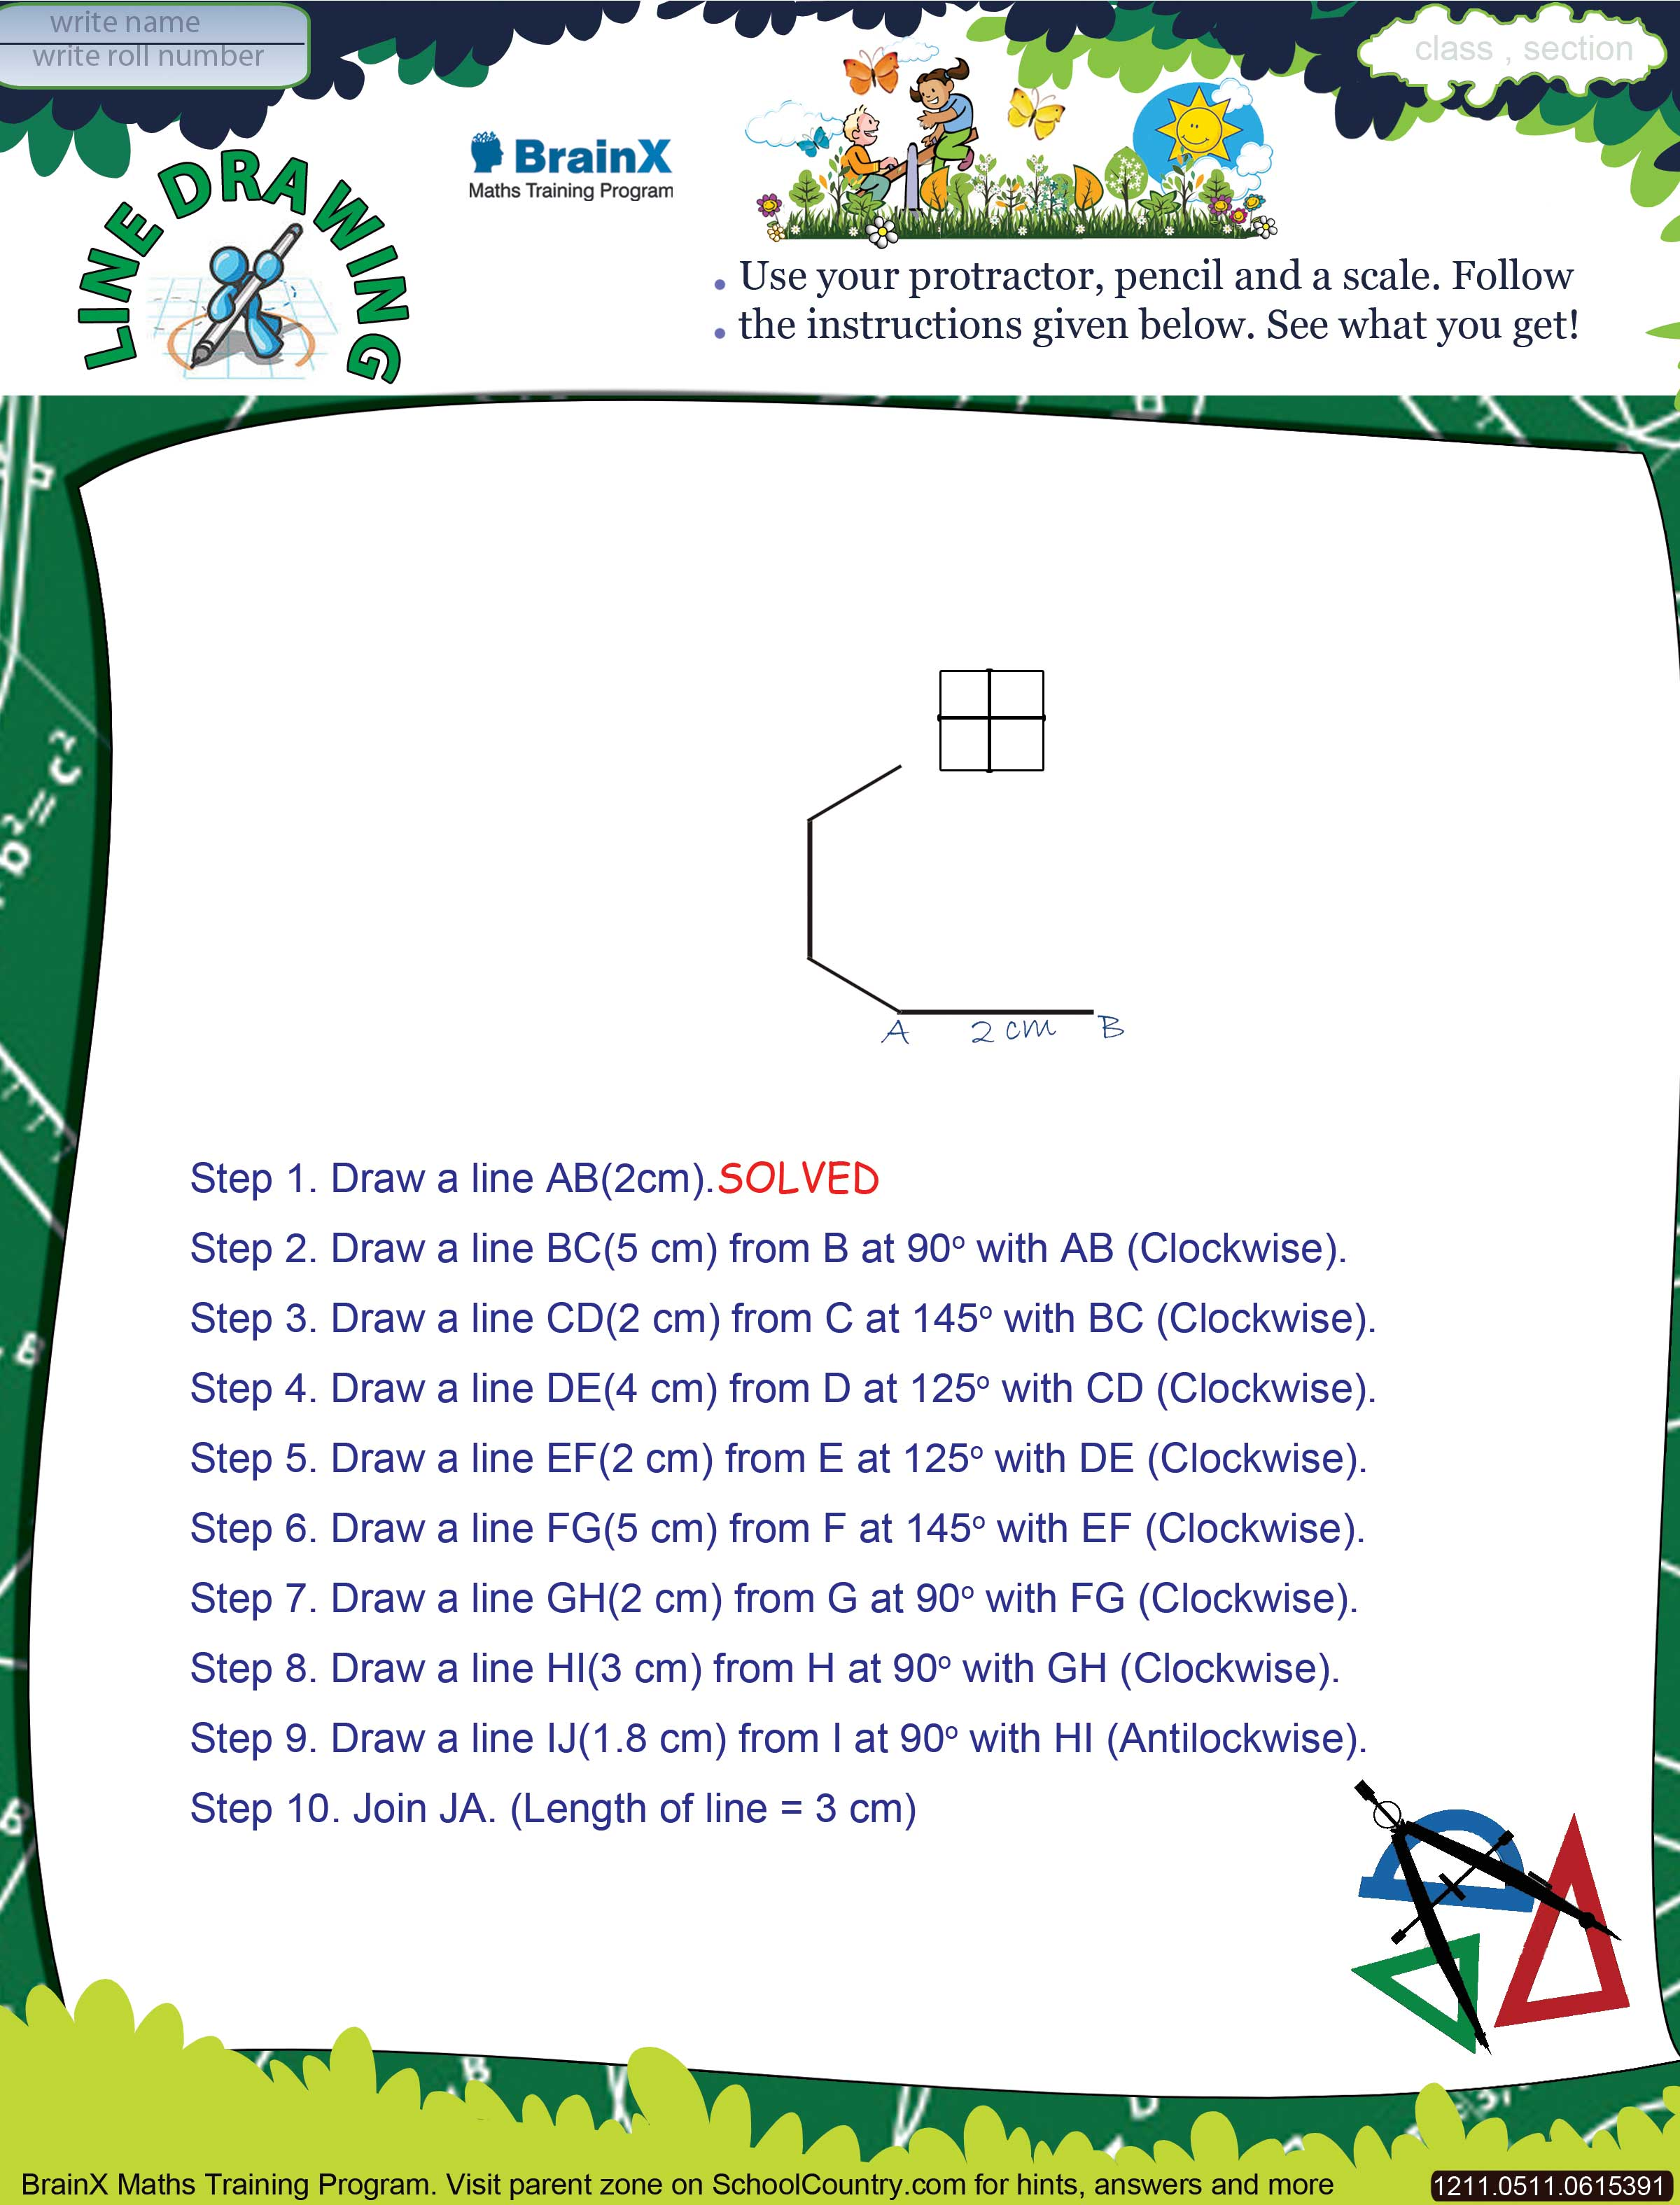 School Worksheets 5th Grade : Printable geometry math olympiad worksheets for kids of